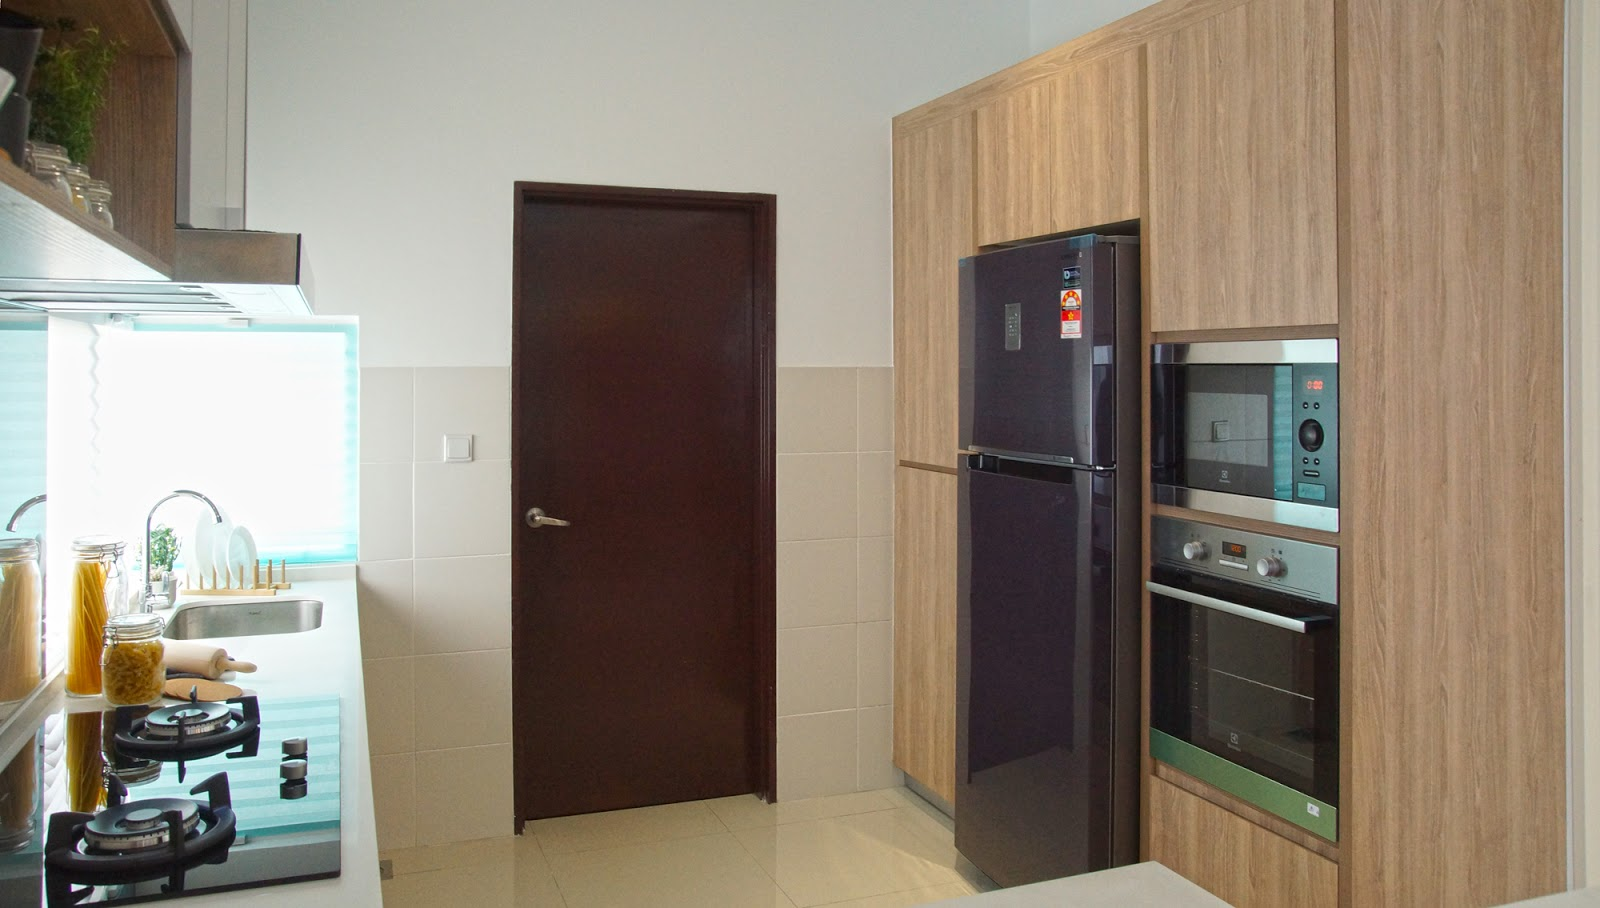 Kitchen cabinet design package for Caspia semi-d link house in M Residence 2 Rawang by Recommend.my